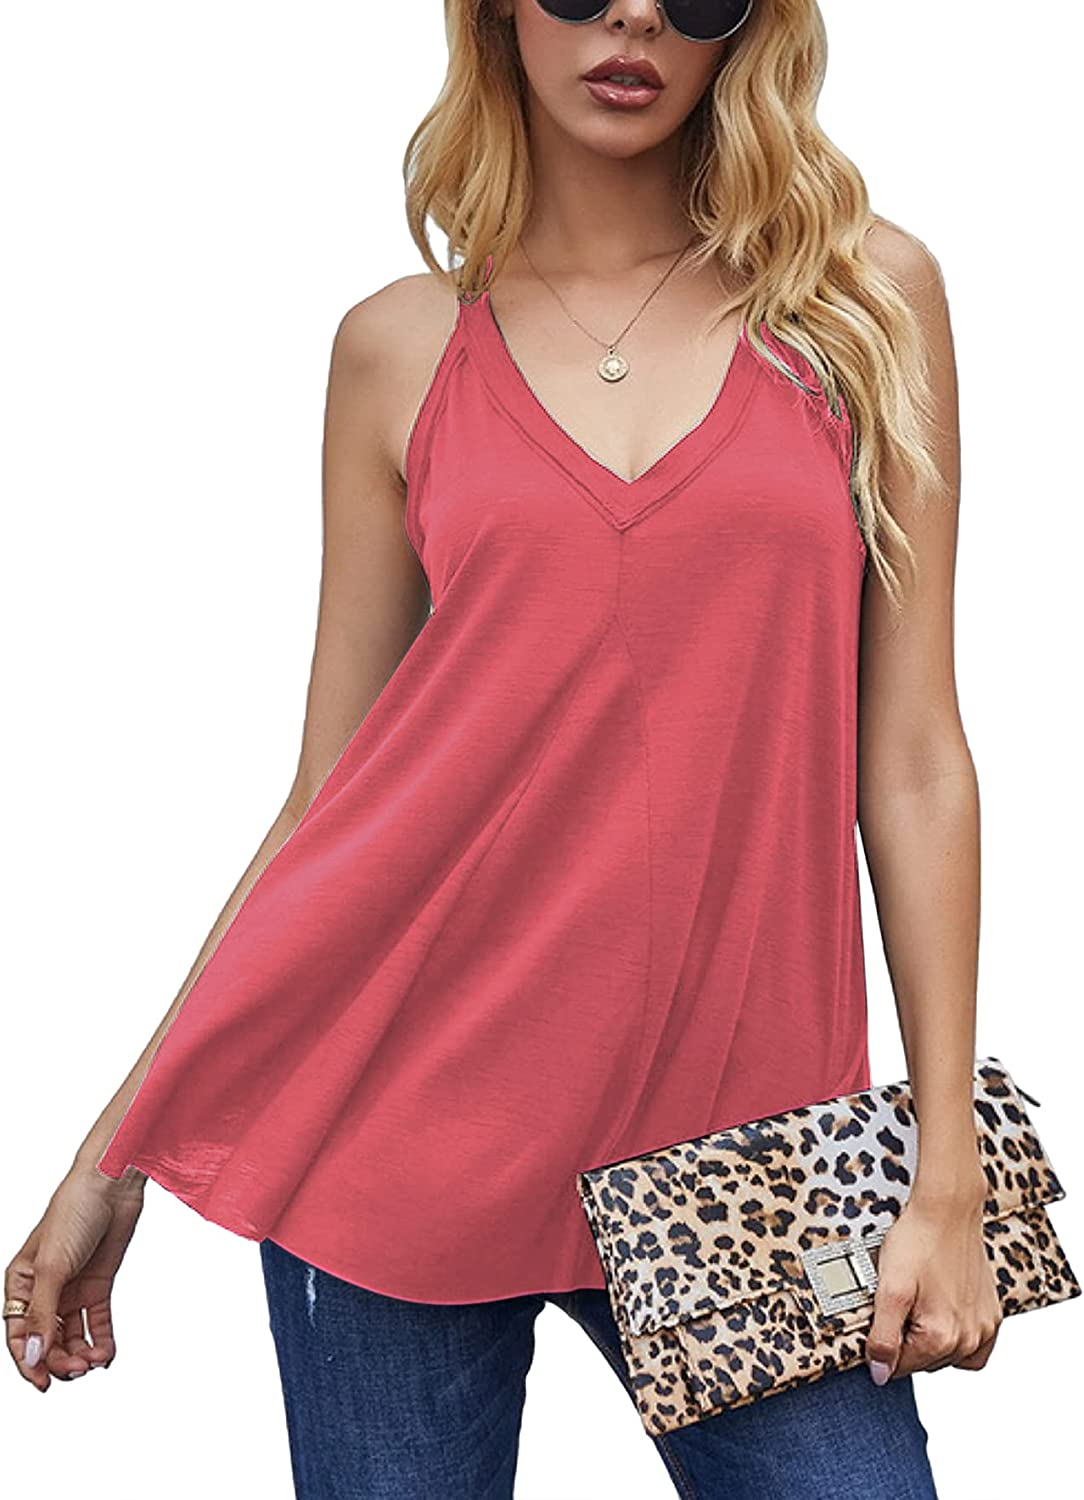 Chigant Women's V Neck Tank Tops Loose Casual Flowy Sleeveless Camisole Top